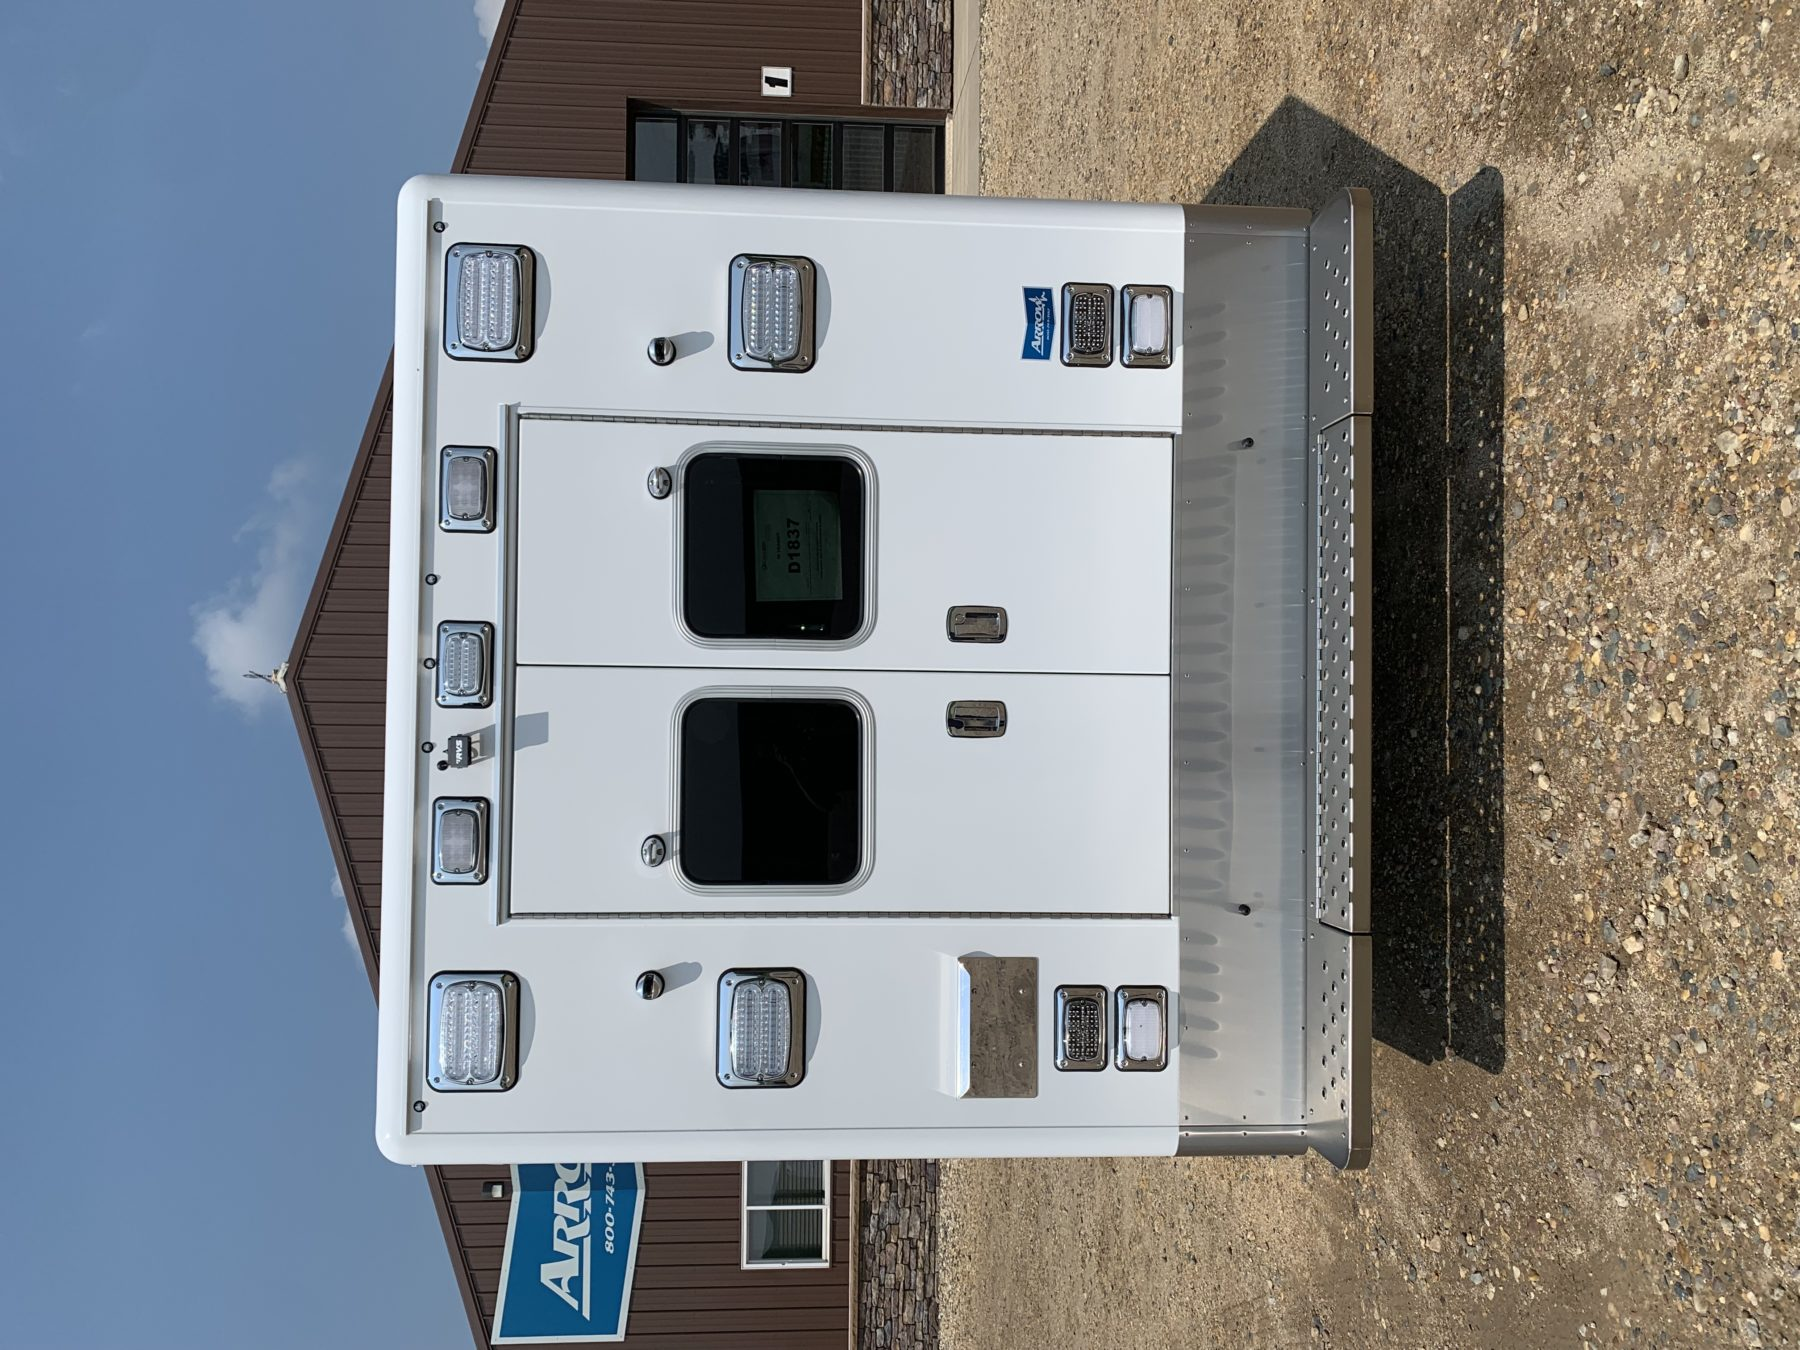 2021 Ram 4500 4x4 Heavy Duty Ambulance For Sale – Picture 11